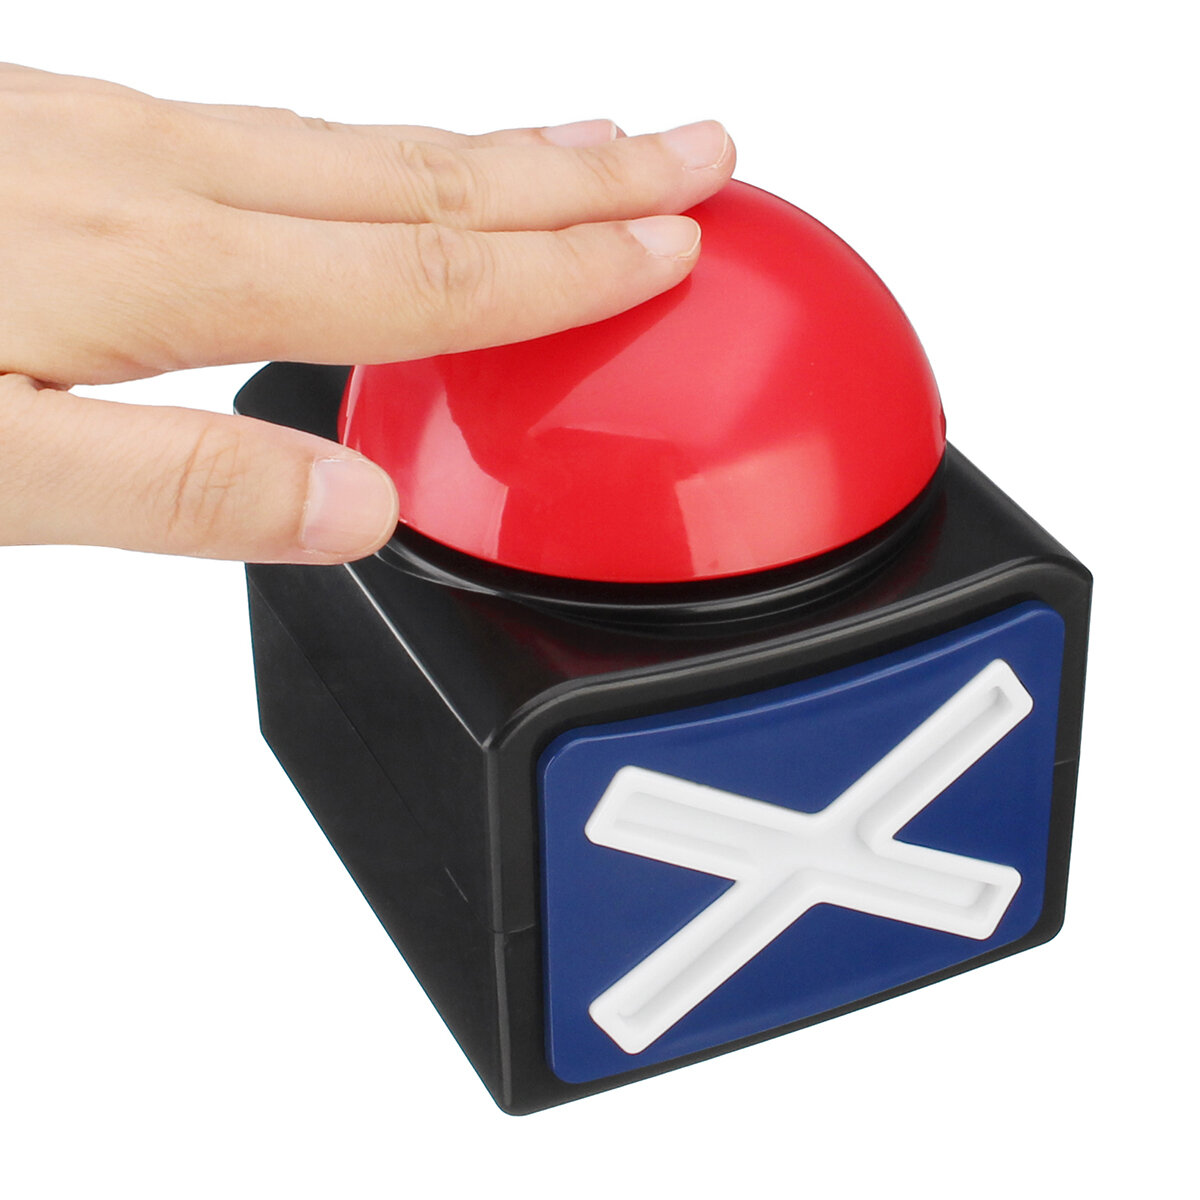 Bang good Buzzer Alarm Push Button Lottery Trivia Quiz Game Red Light With  Sound And Light